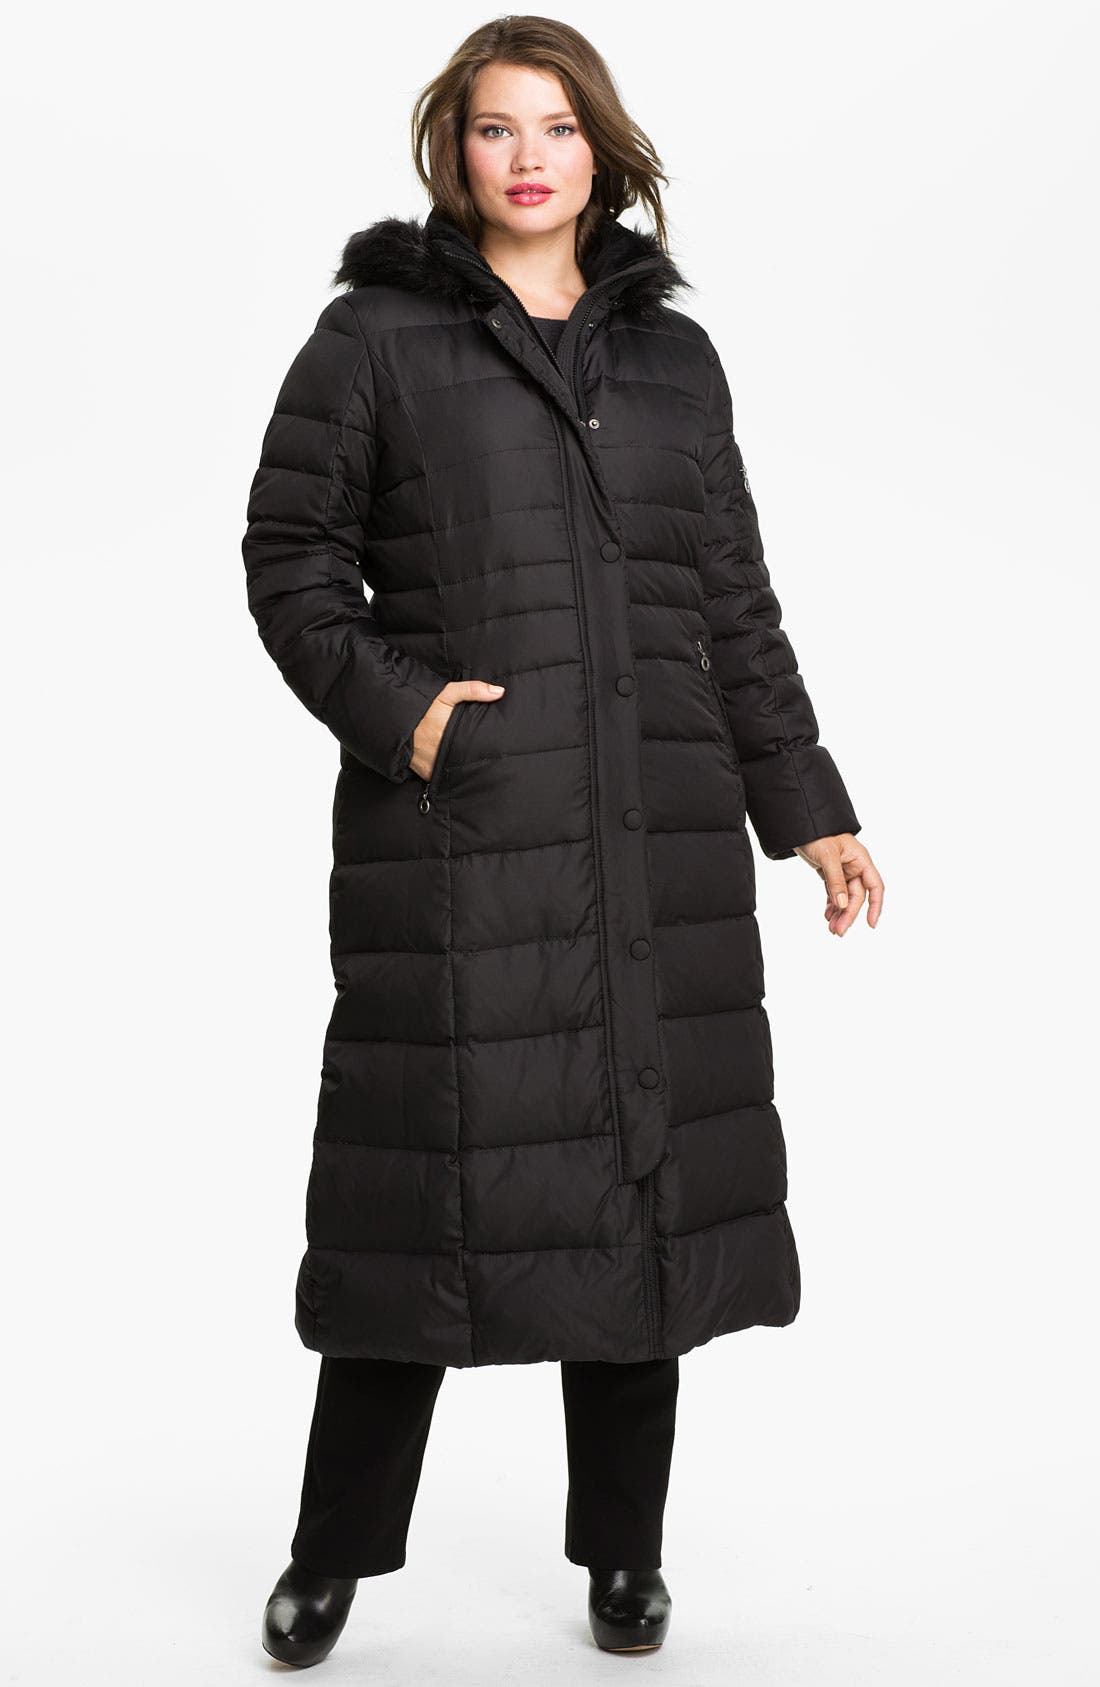 Alternate Image 1 Selected - DKNY Quilted Maxi Coat with Faux Fur Trim (Plus)